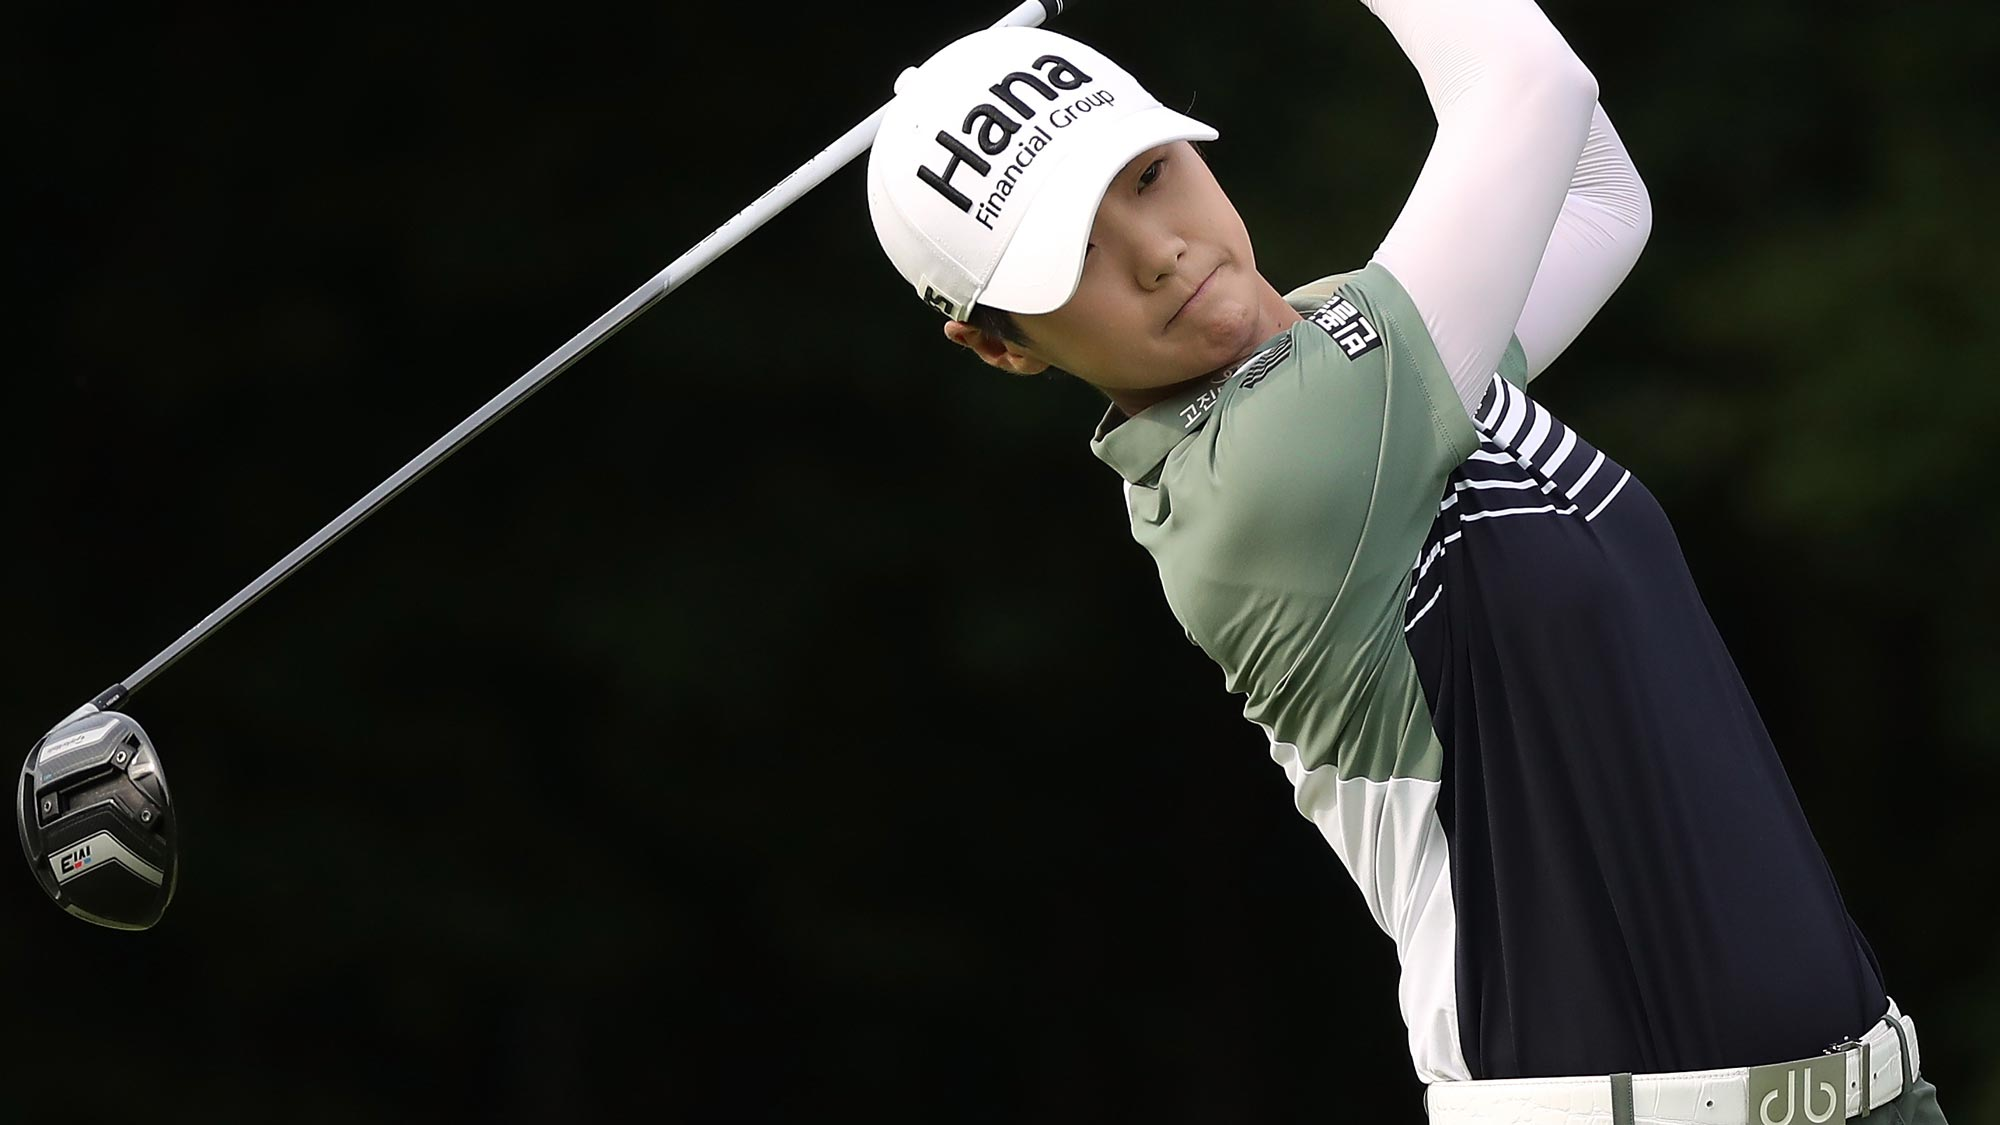 Sung Hyun Park of Korea watches her tee shot on the 15th hole during the first round of the 2018 KPMG Women's PGA Championship